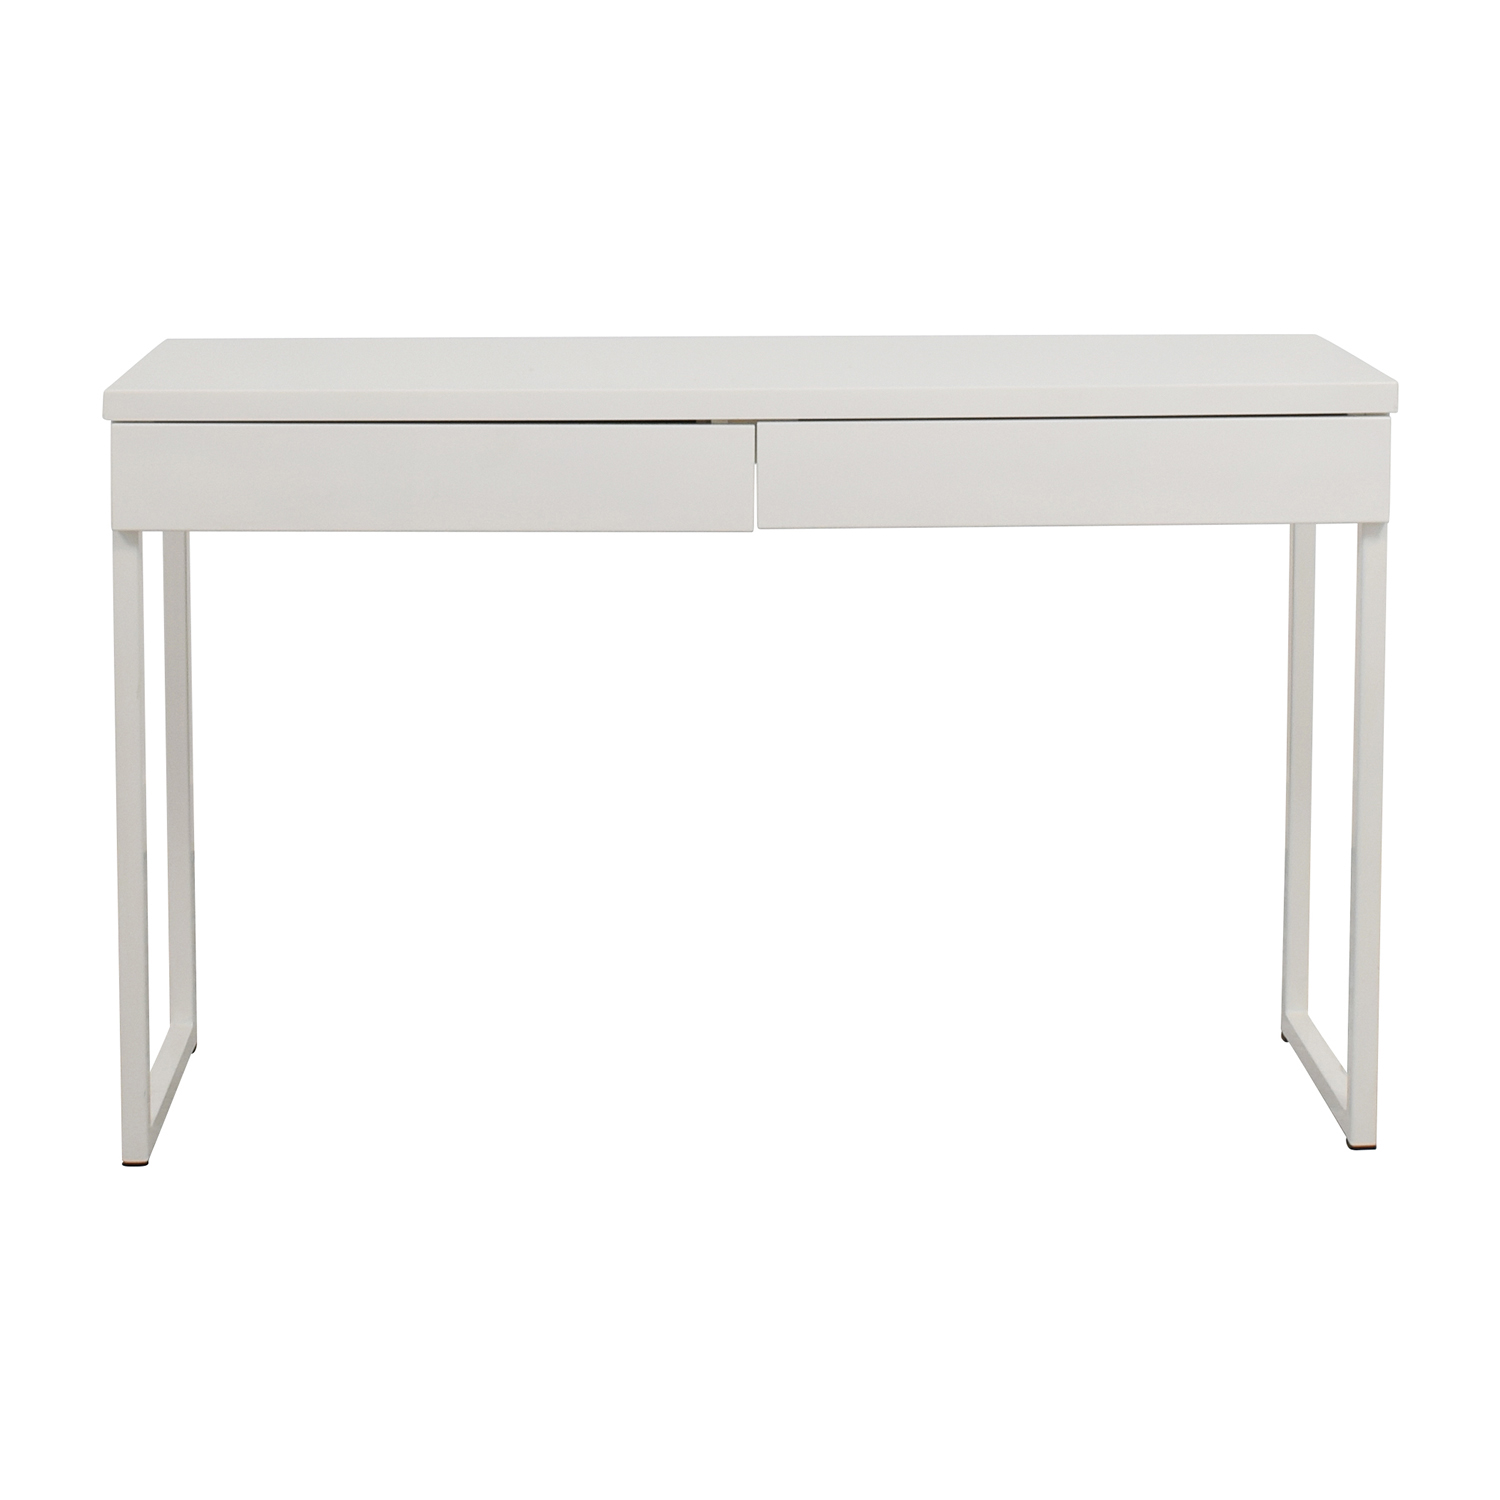 46% OFF Wayfair Wayfair Gold Matte Writing Desk Tables